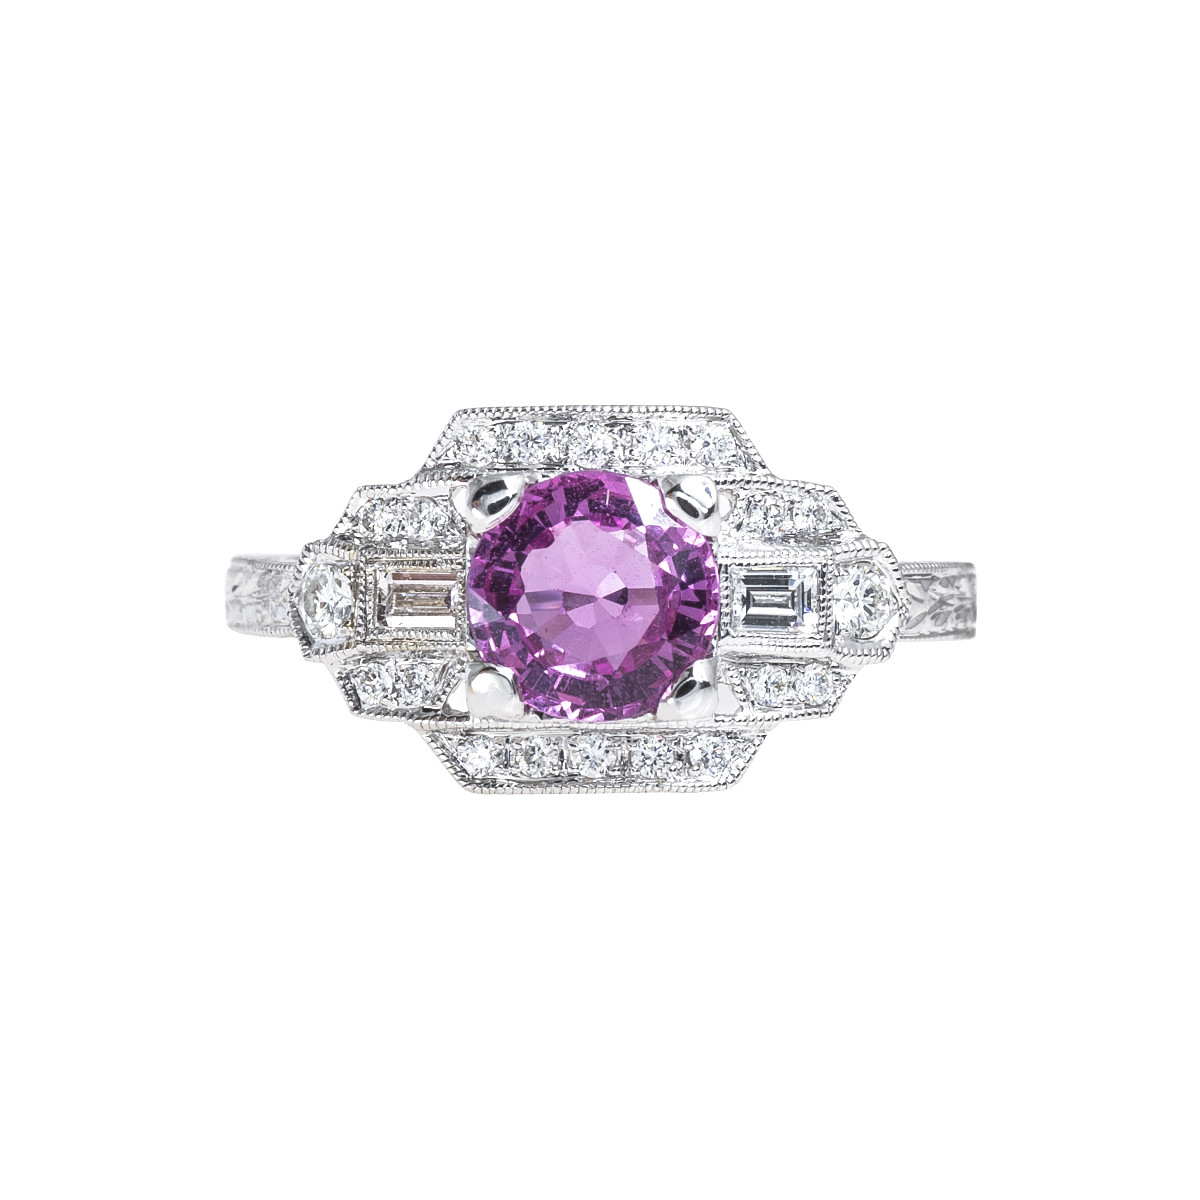 New Beverley K Art Deco-Inspired 1.47 CTW Pink Sapphire & Diamond Engagement Ring